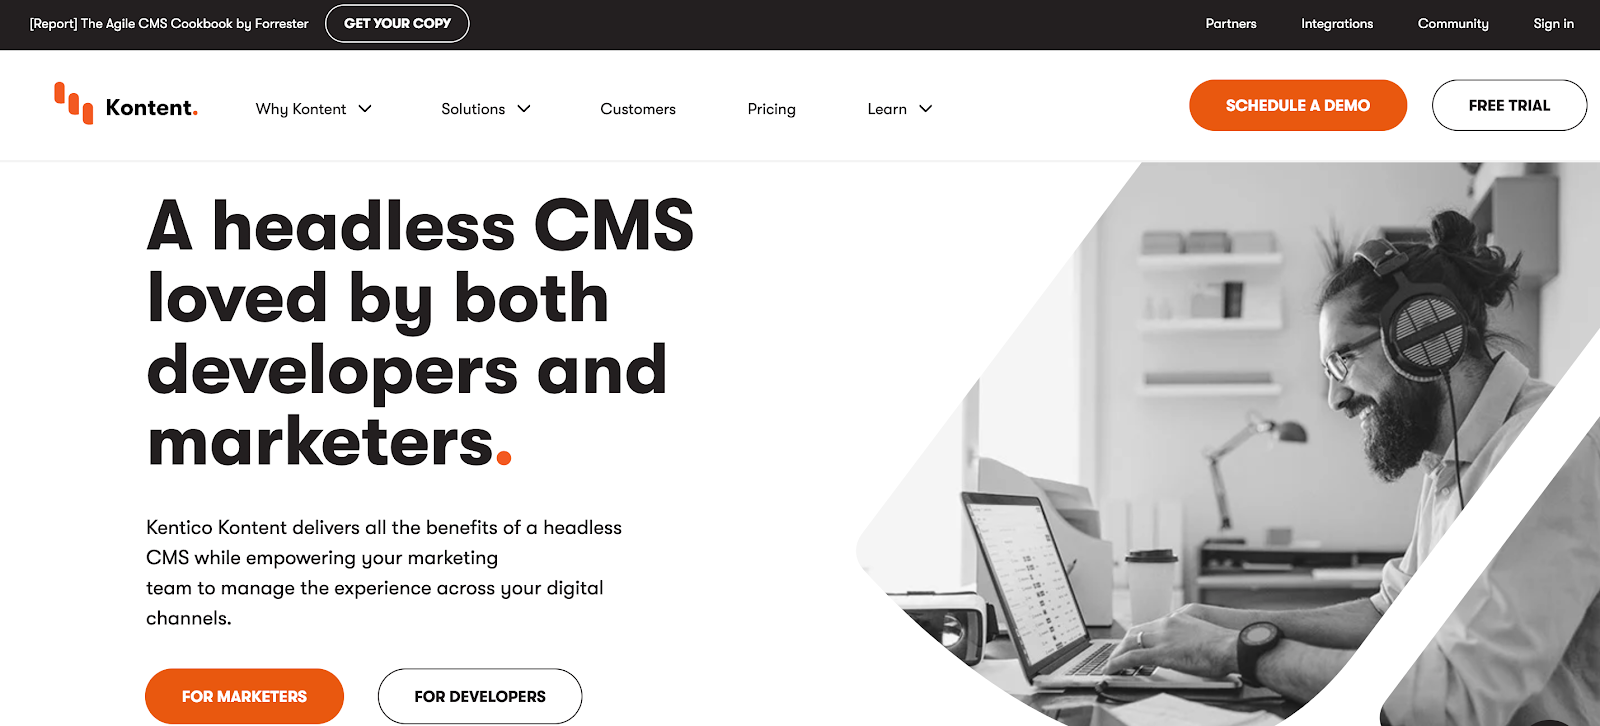 Kentico Kontent has crept to the front of the pack of Englands' CMS companies since its launch, and caters to marketers and developers